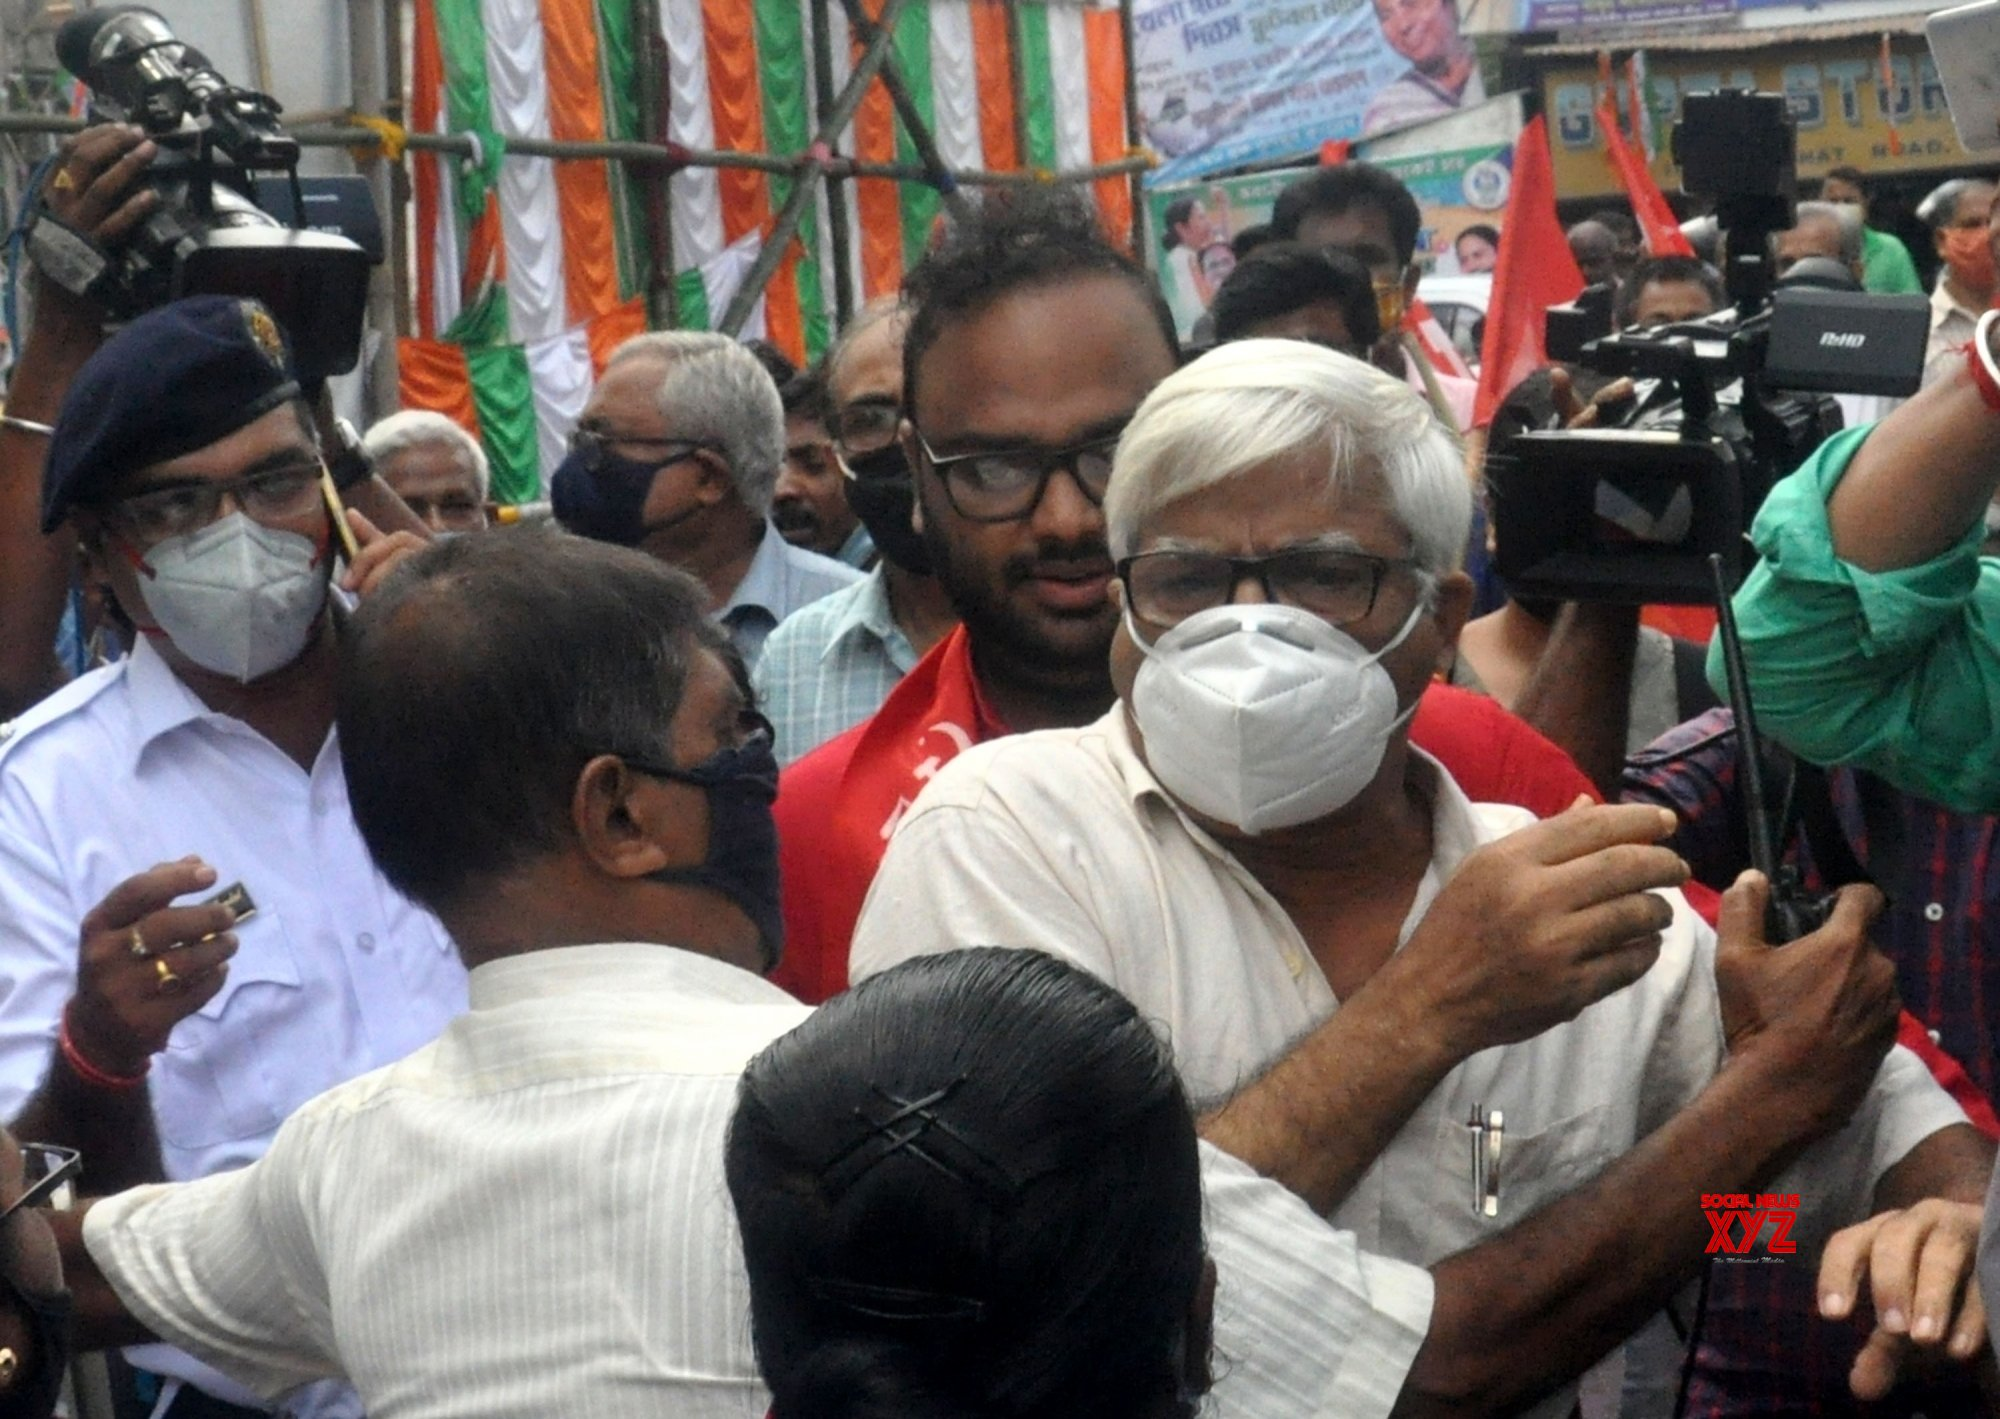 Kolkata : Police personnel obstructing CPIM Candidate for up coming By Election at Bhawanipur Assembly seat Sreejib Biswas and party leader Sujan Chakraborty during a campaign. #Gallery